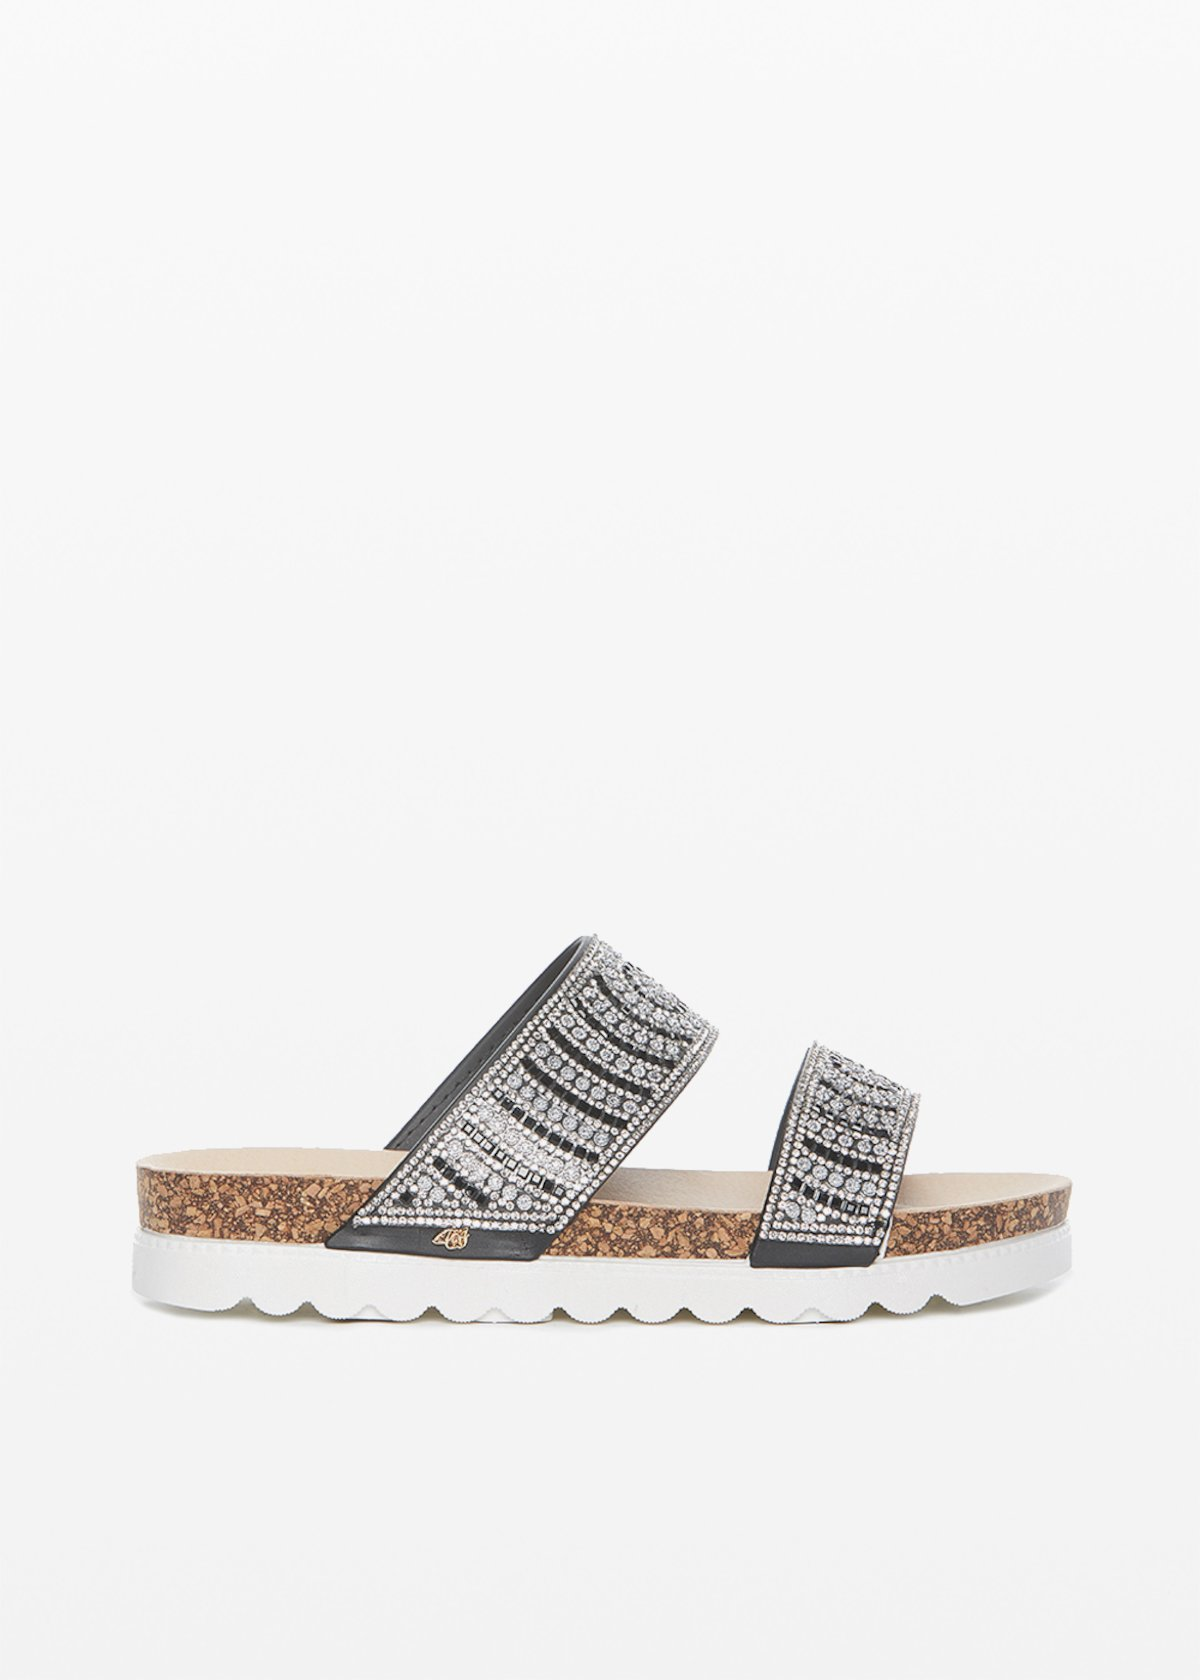 Shirl Flat Sandals with double strap and crystal-details - Black - Woman